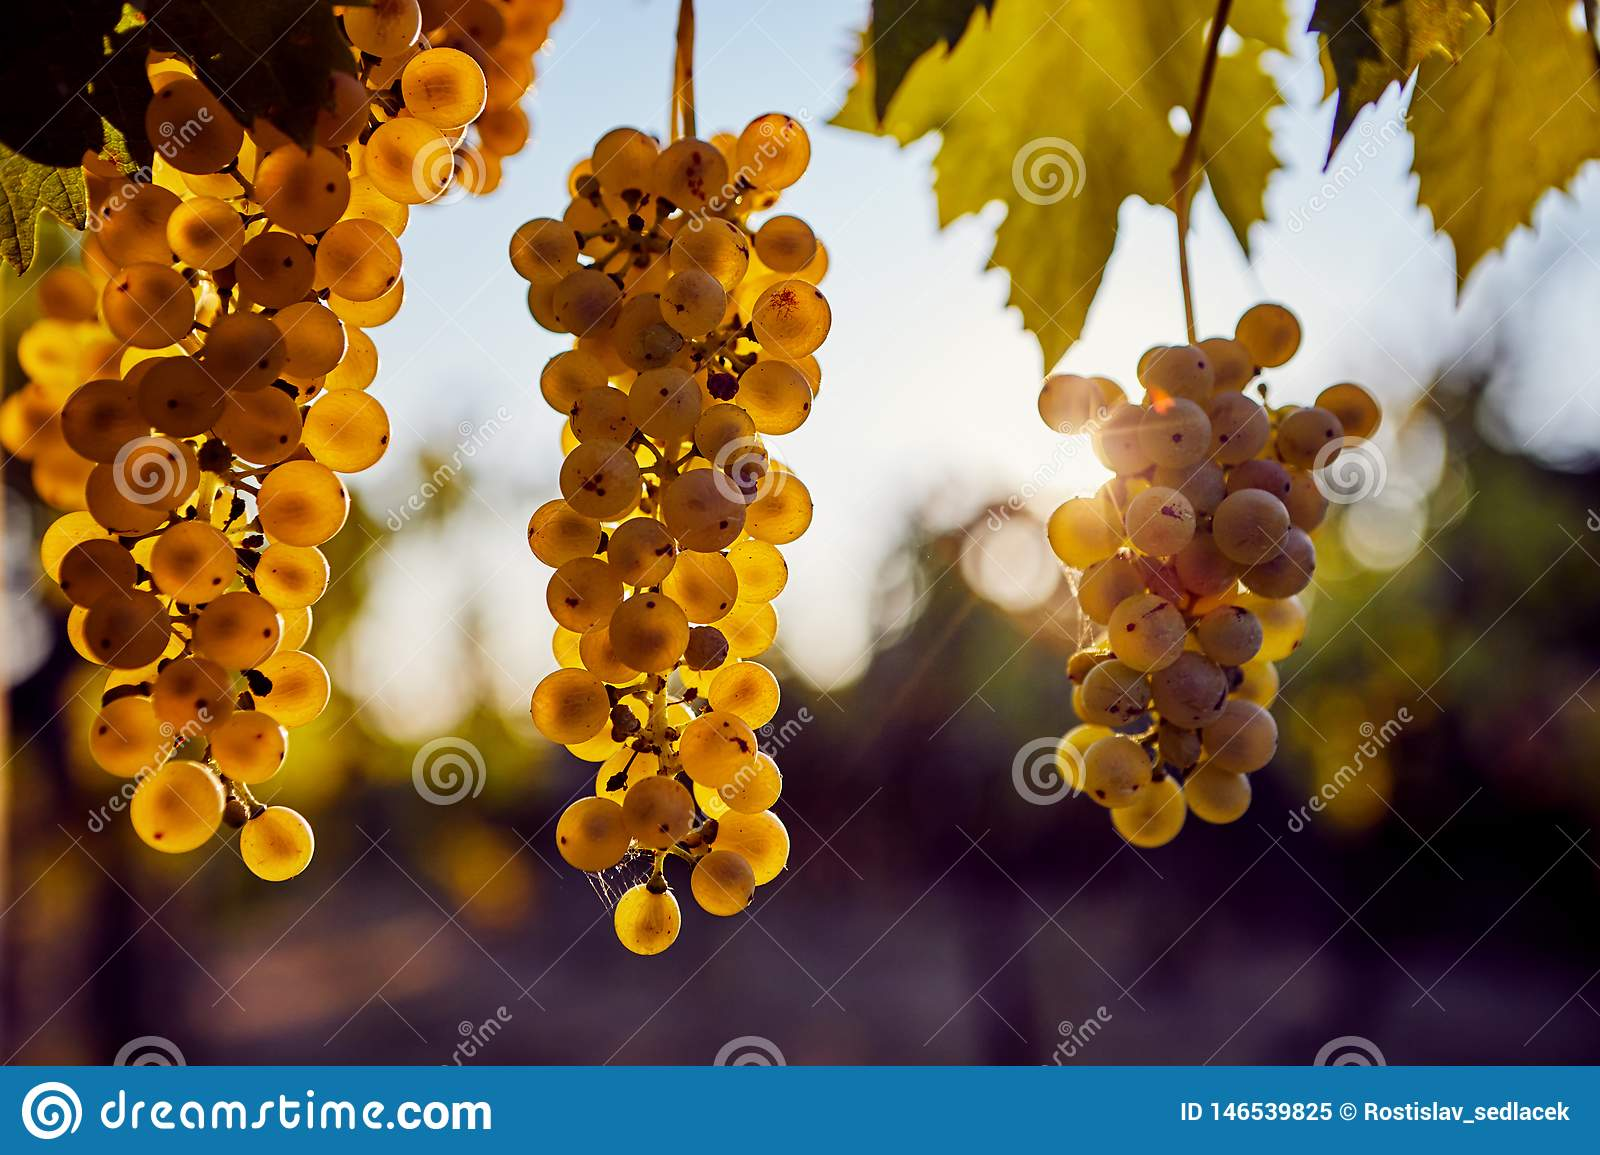 Three yellow grapes hanging on the vine